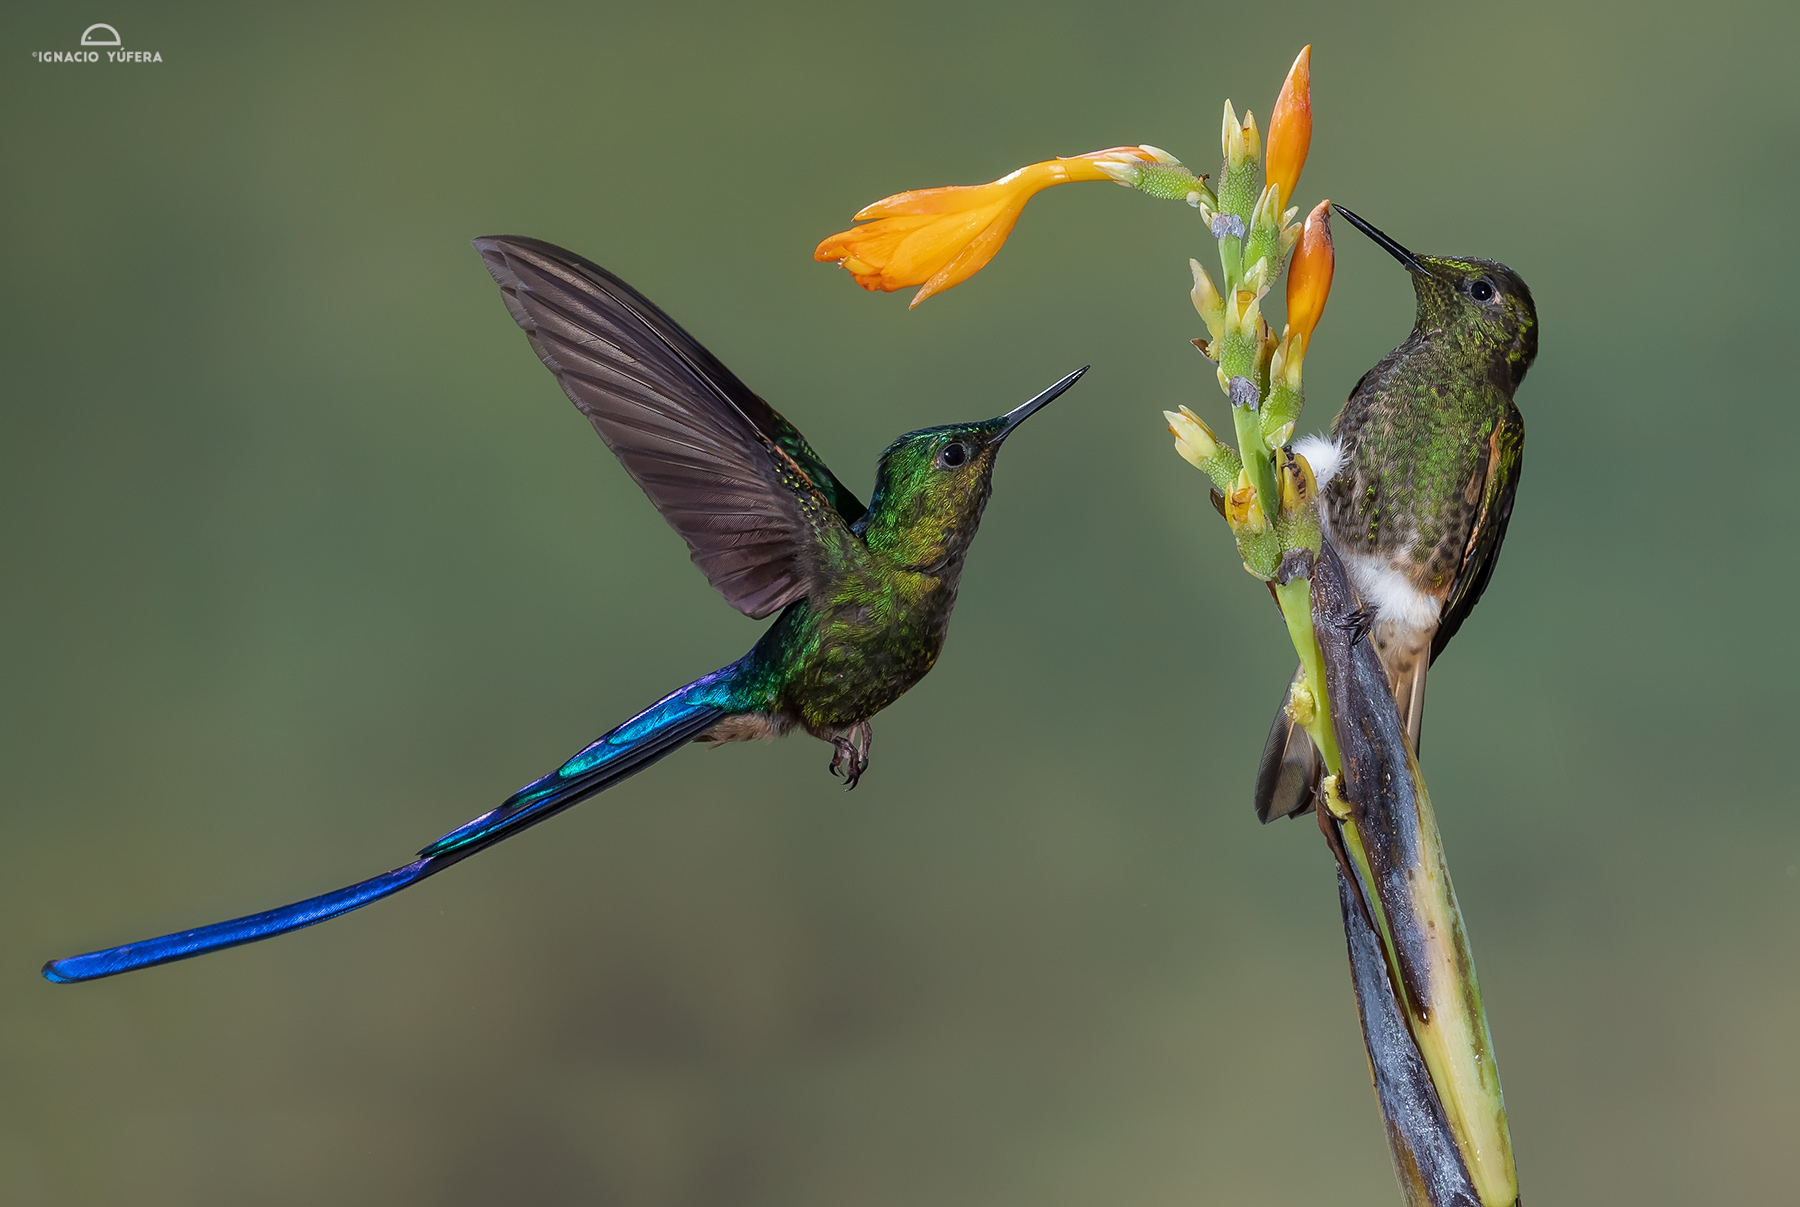 Long-tailed Sylph and Buff-tailed Coronet, Tandayapa, Ecuador